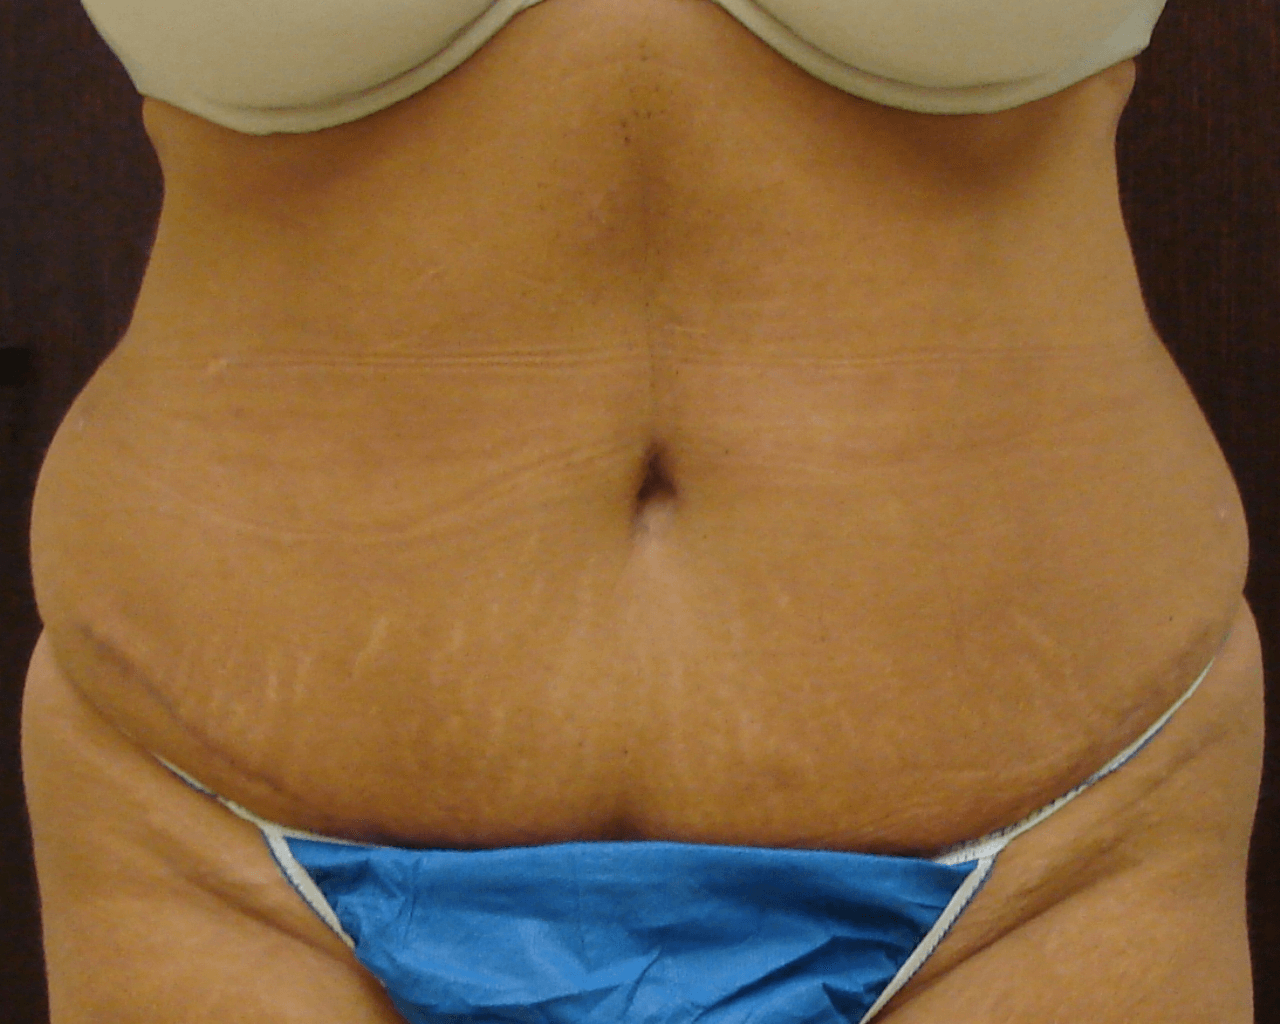 47 year old Abdominoplasty with diastasis repair, and Liposuction contouring before and 4 months after